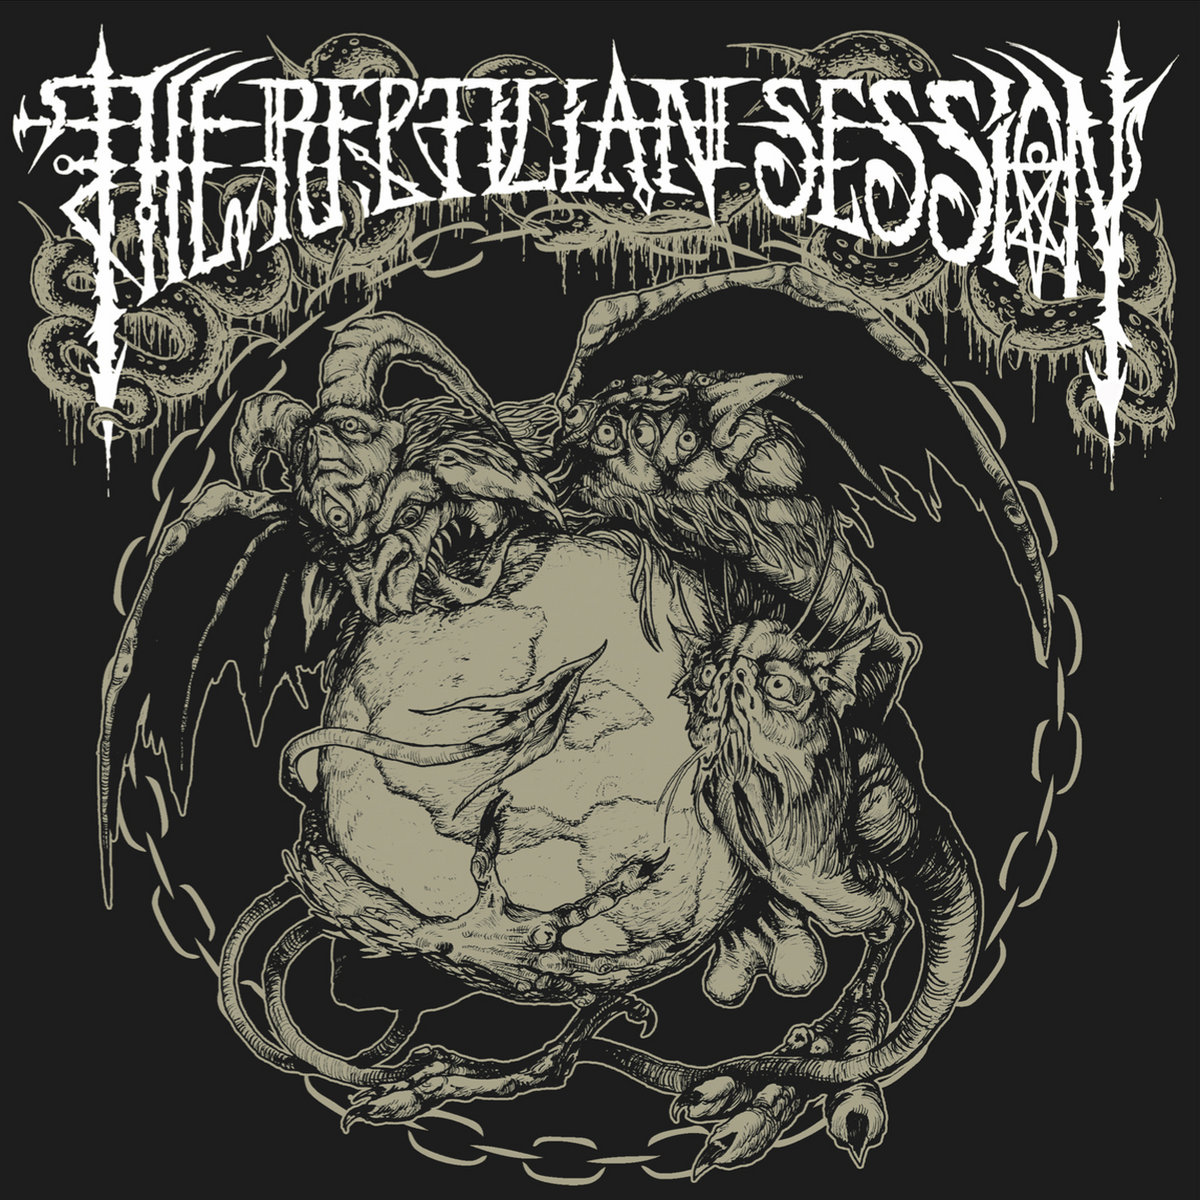 The Reptilian Session | Dead Seed Productions